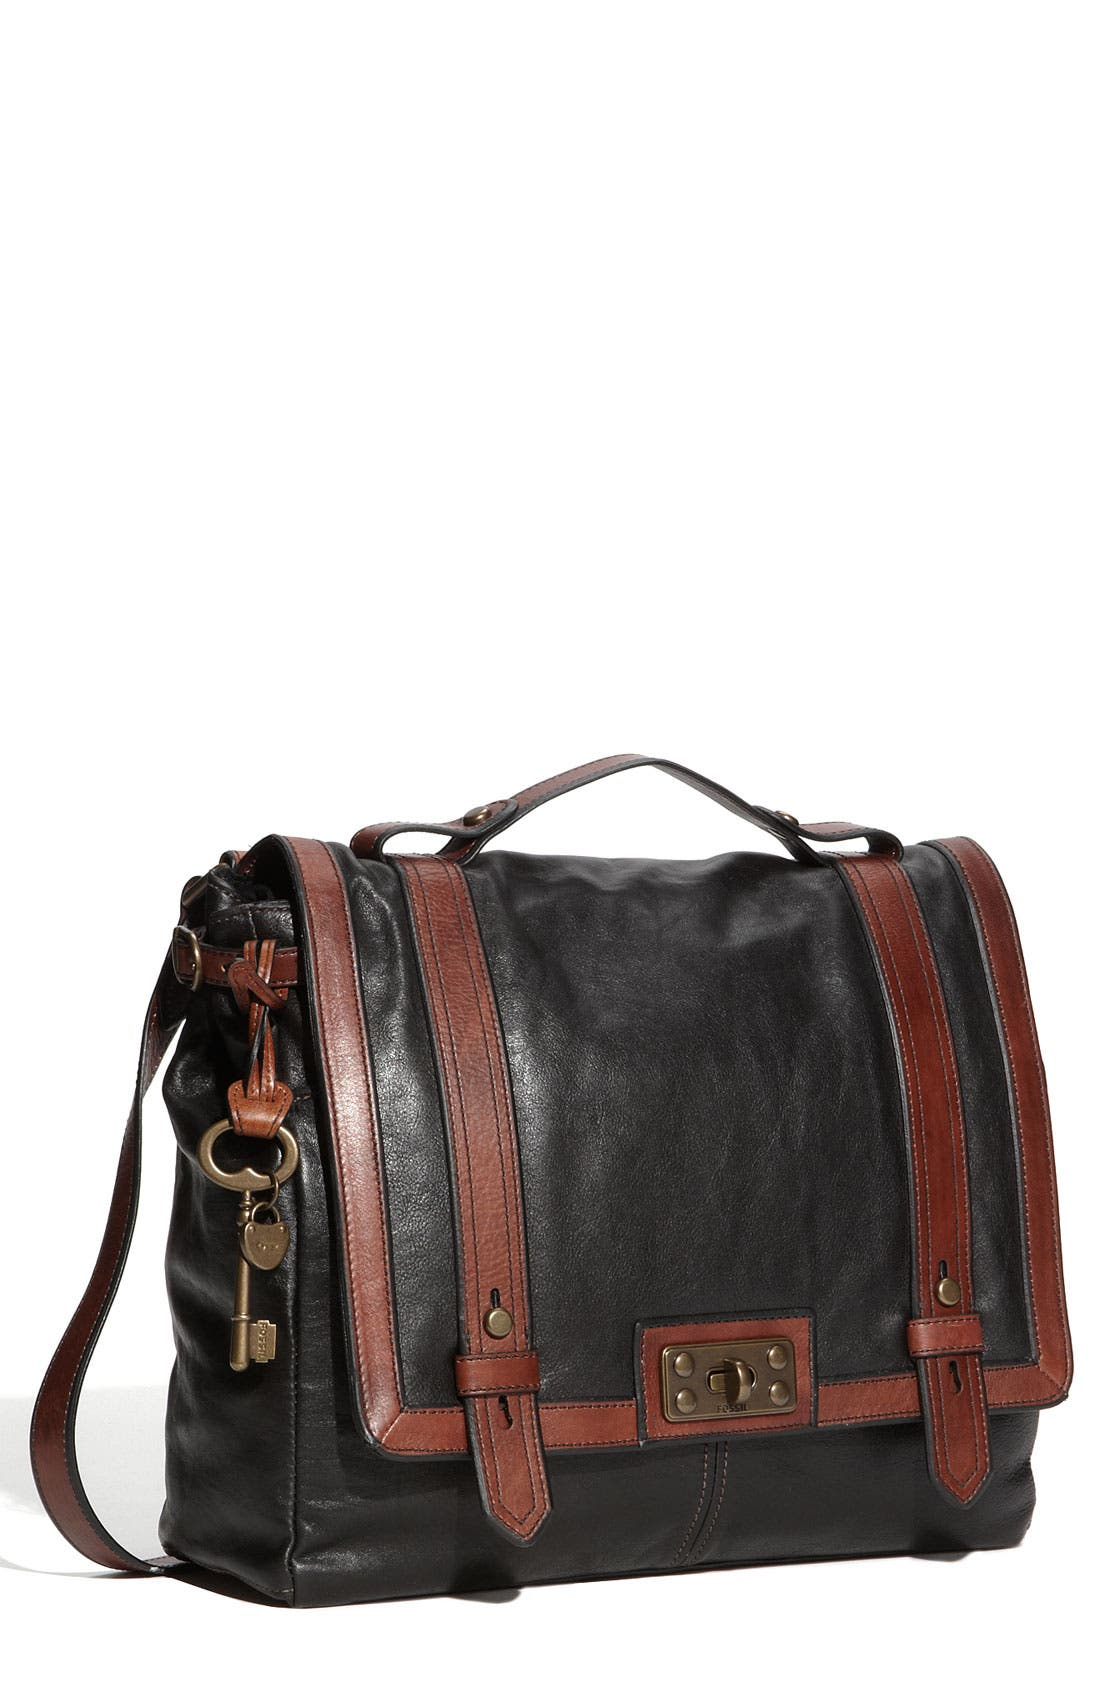 FOSSIL, 'Vintage Reissue' Crossbody Bag, Main thumbnail 1, color, 010